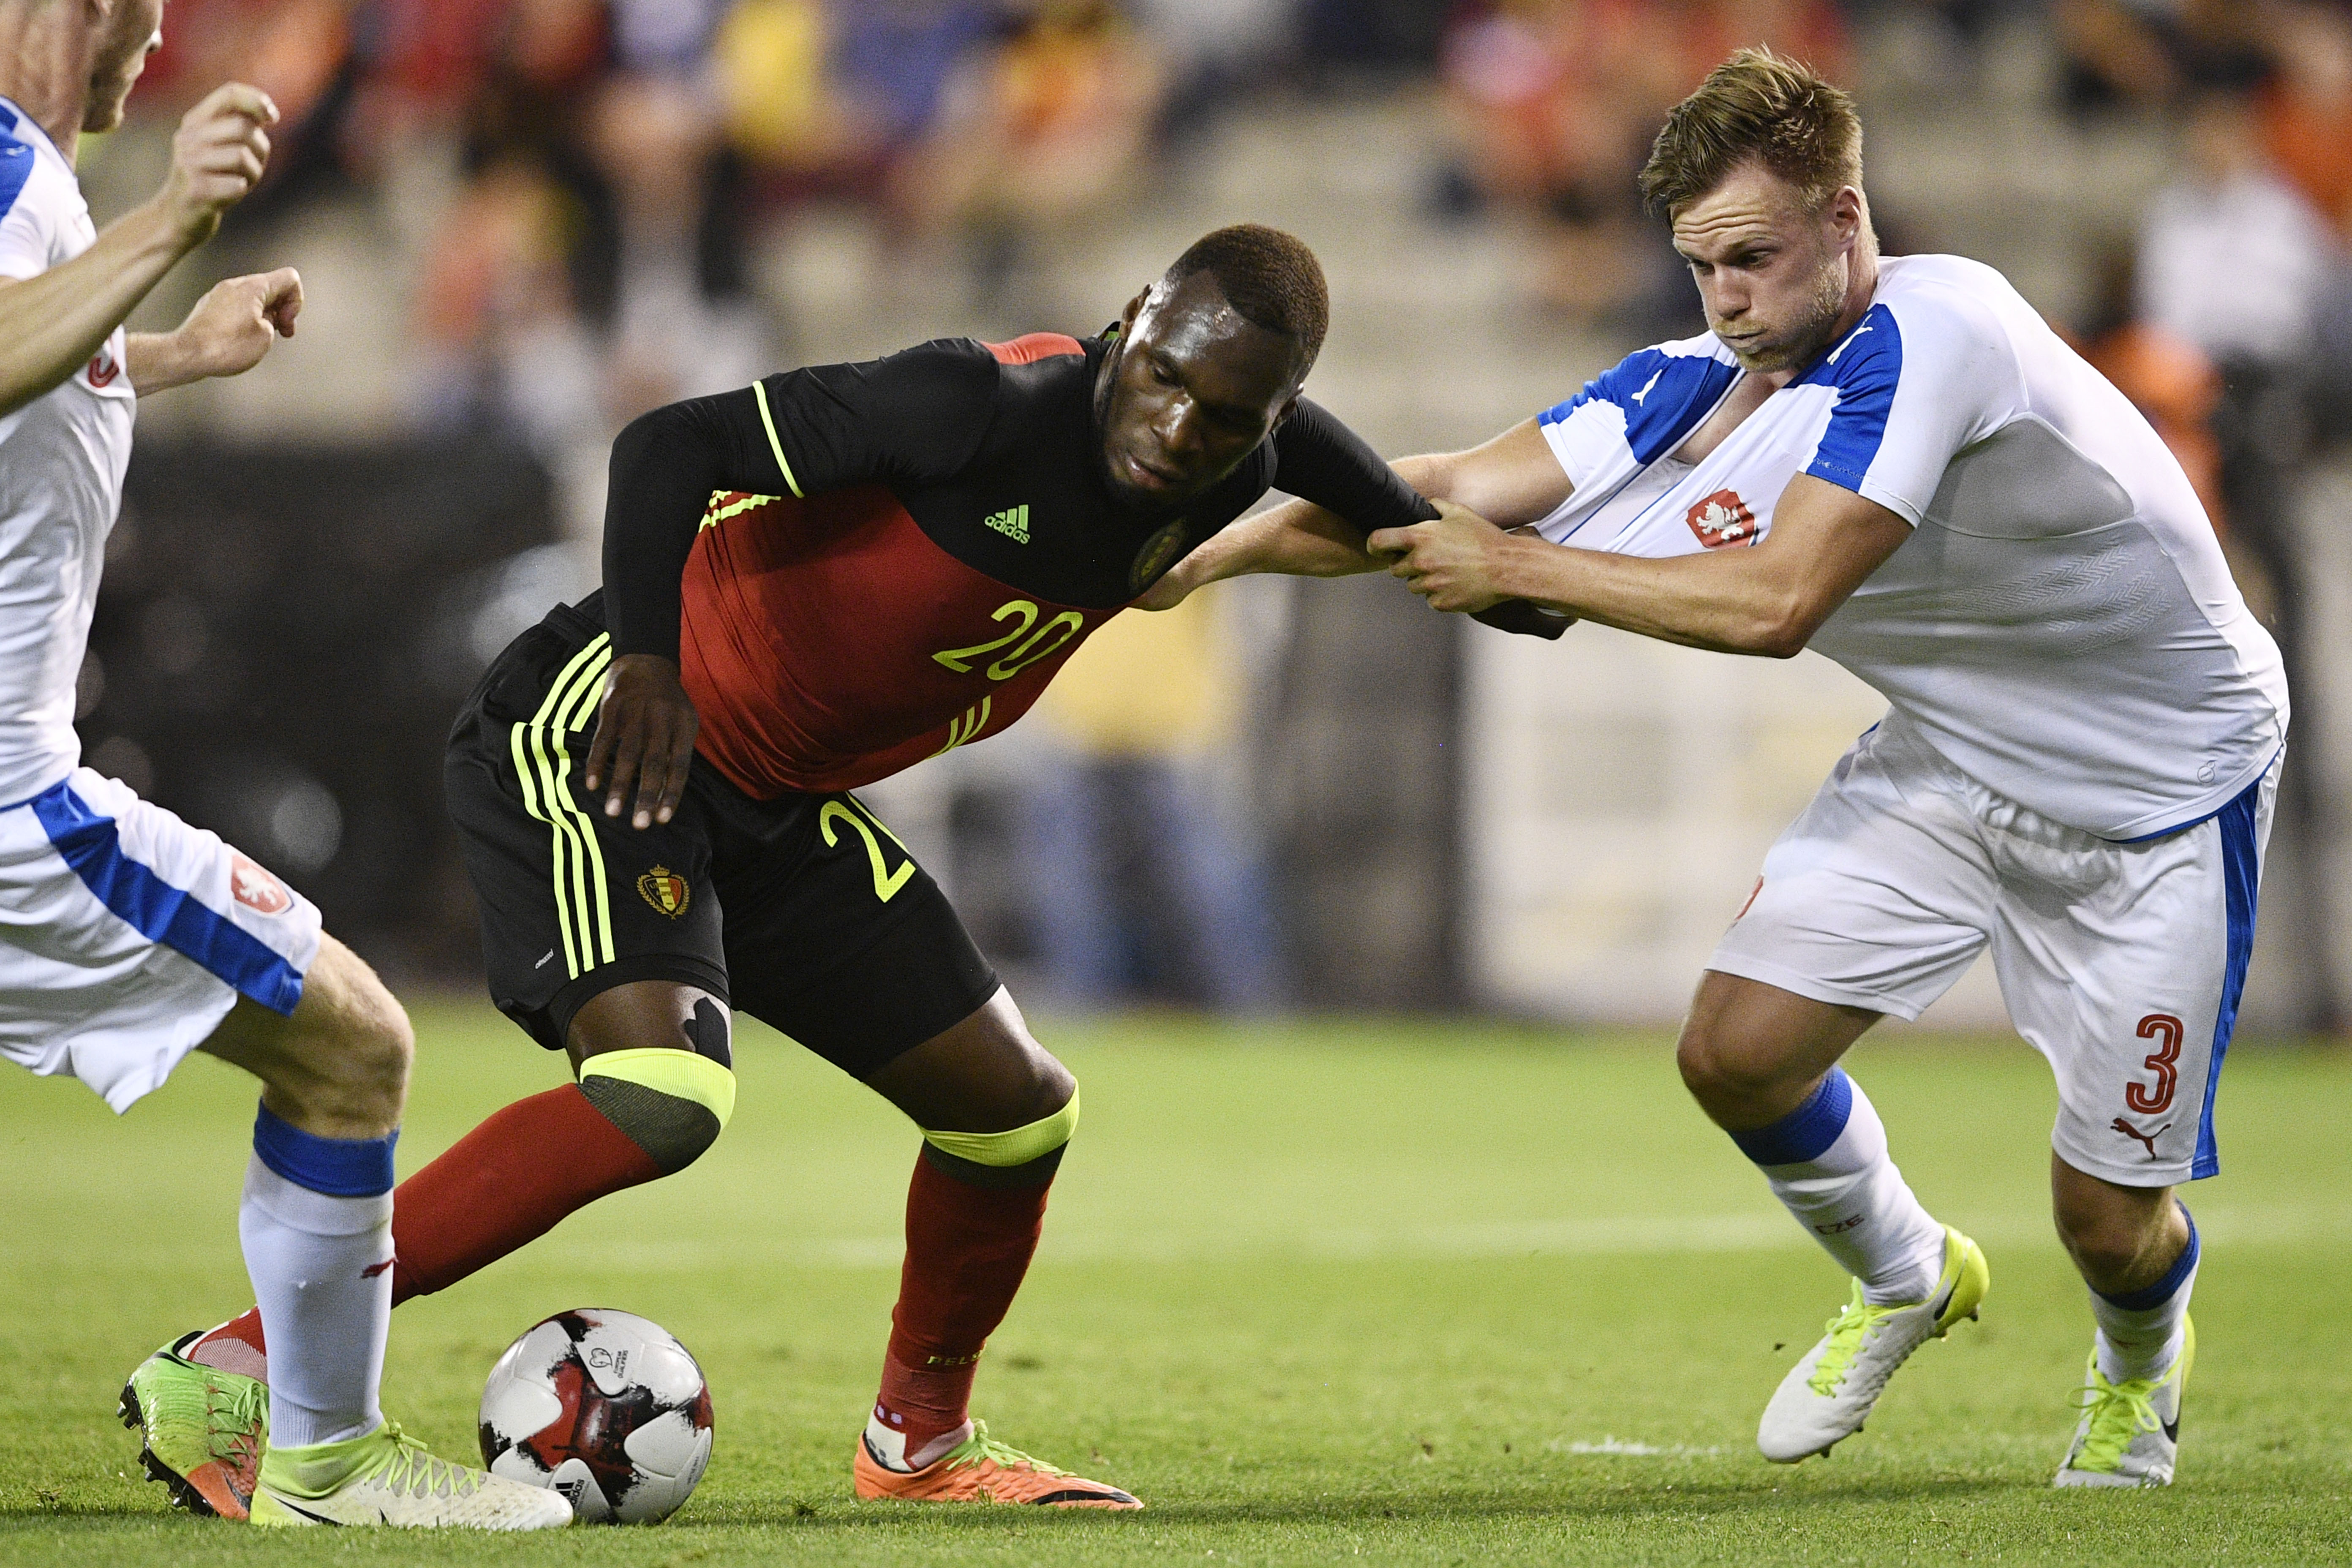 Belgium's Christian Benteke and Czech Tomas Kalas fight for the ball during a friendly game between Belgian national soccer team Red Devils and Czech Republic, Monday 05 June 2017, in Brussels. BELGA PHOTO YORICK JANSENS